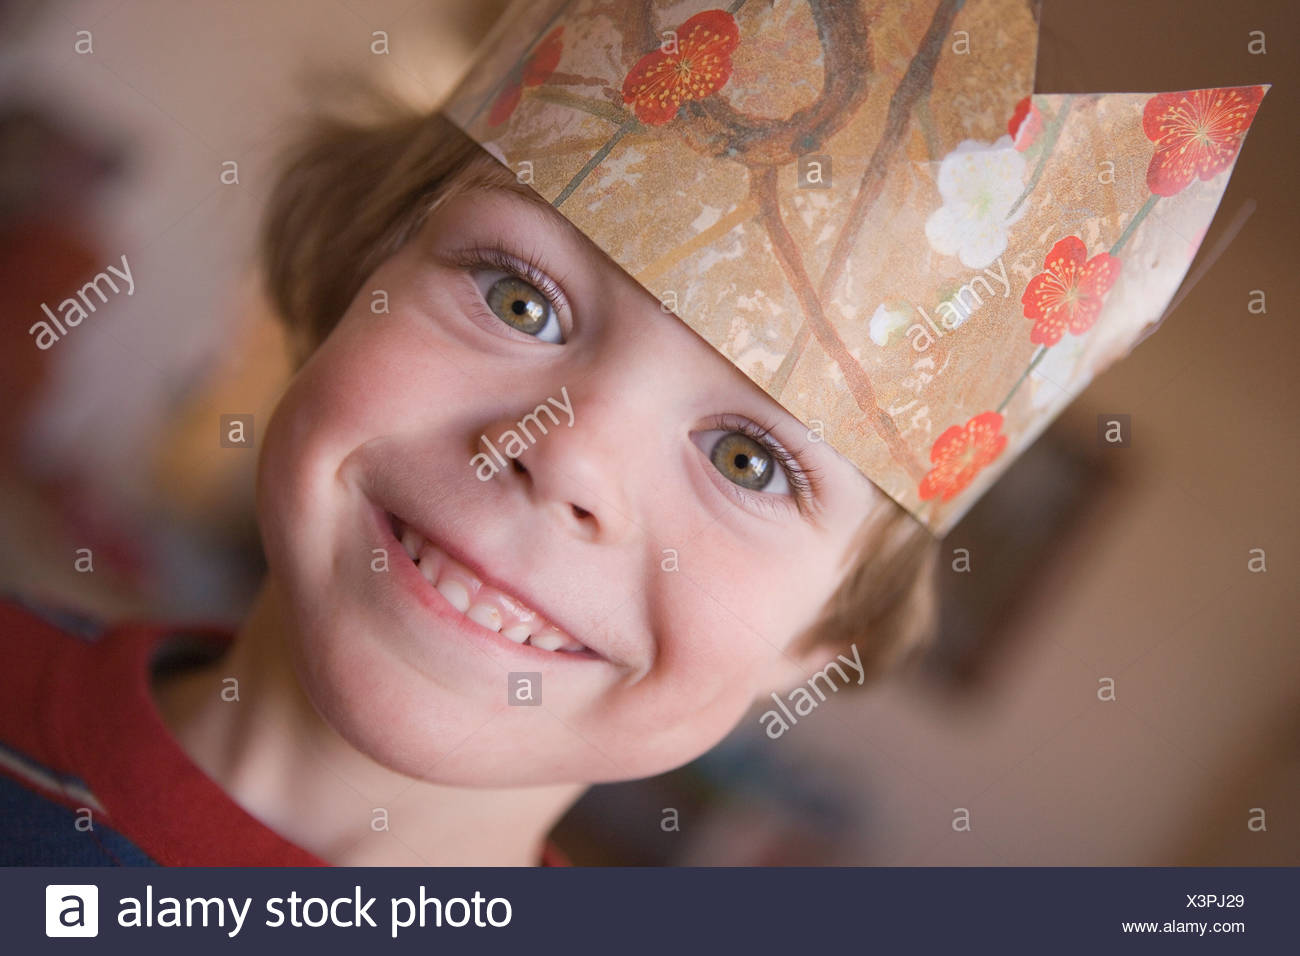 d9012a6e00ca5 Young boy wearing paper crown Stock Photo  277706977 - Alamy